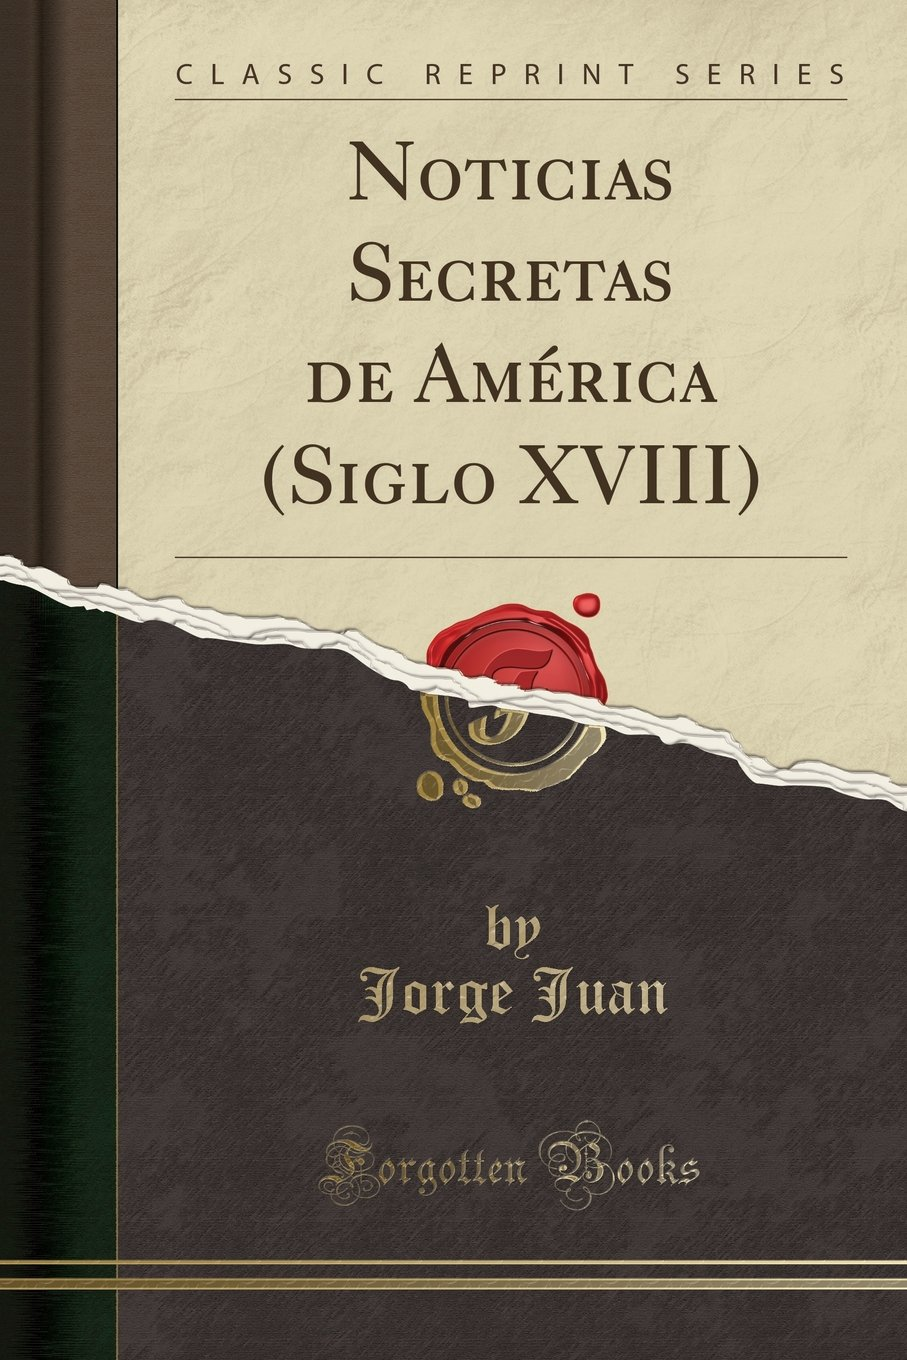 Noticias Secretas de América (Siglo XVIII) (Classic Reprint) (Spanish Edition): Jorge Juan: 9781332393084: Amazon.com: Books